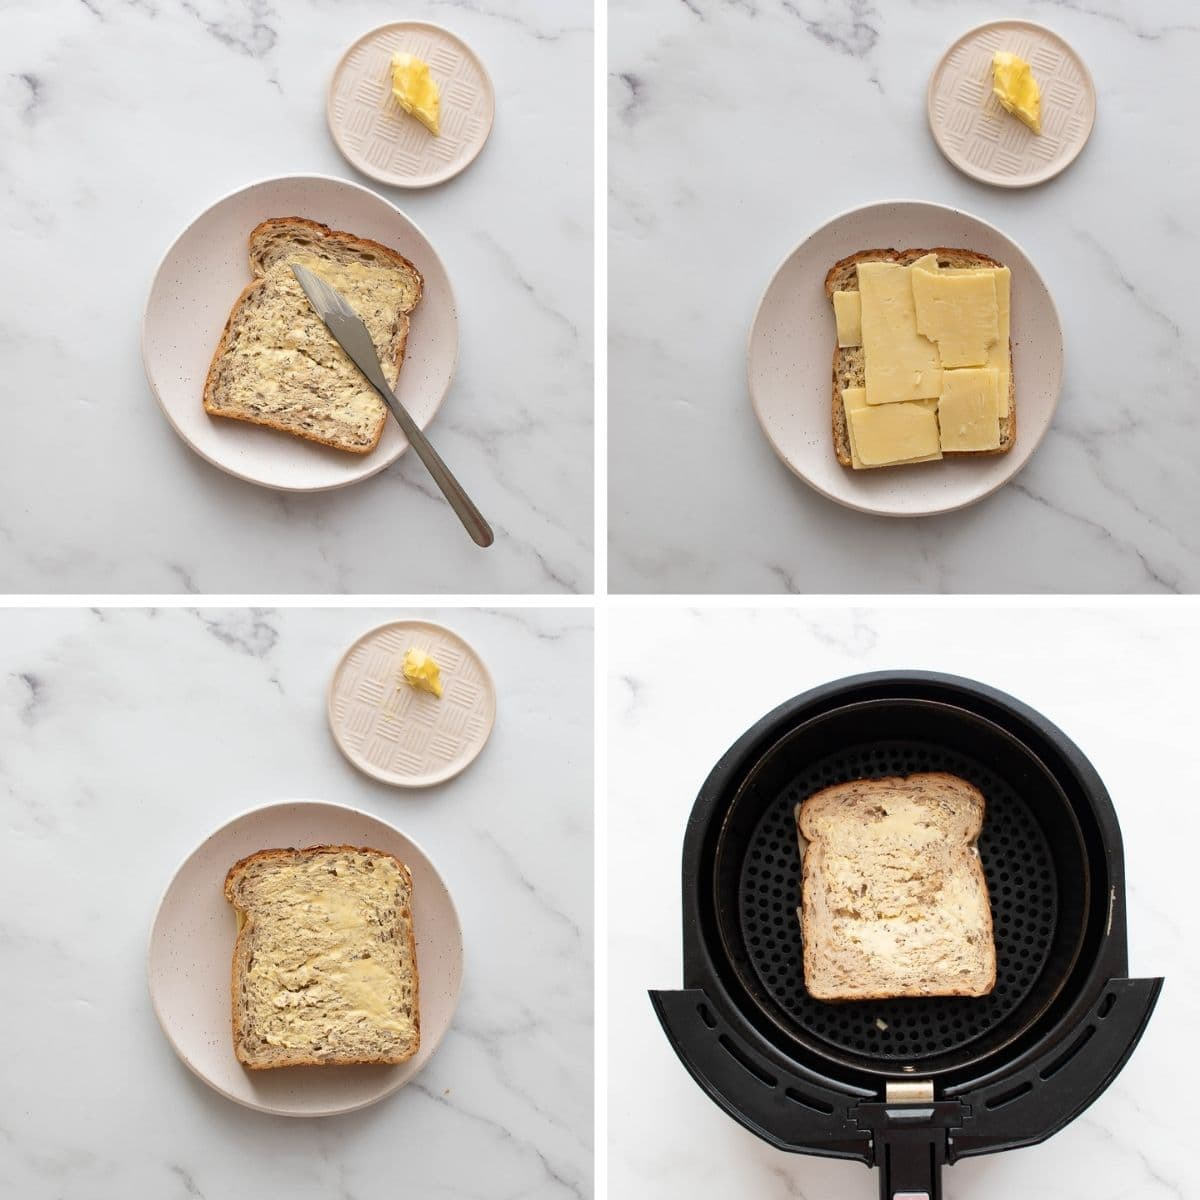 Step by step how to make grilled cheese sandwich in an air fryer.